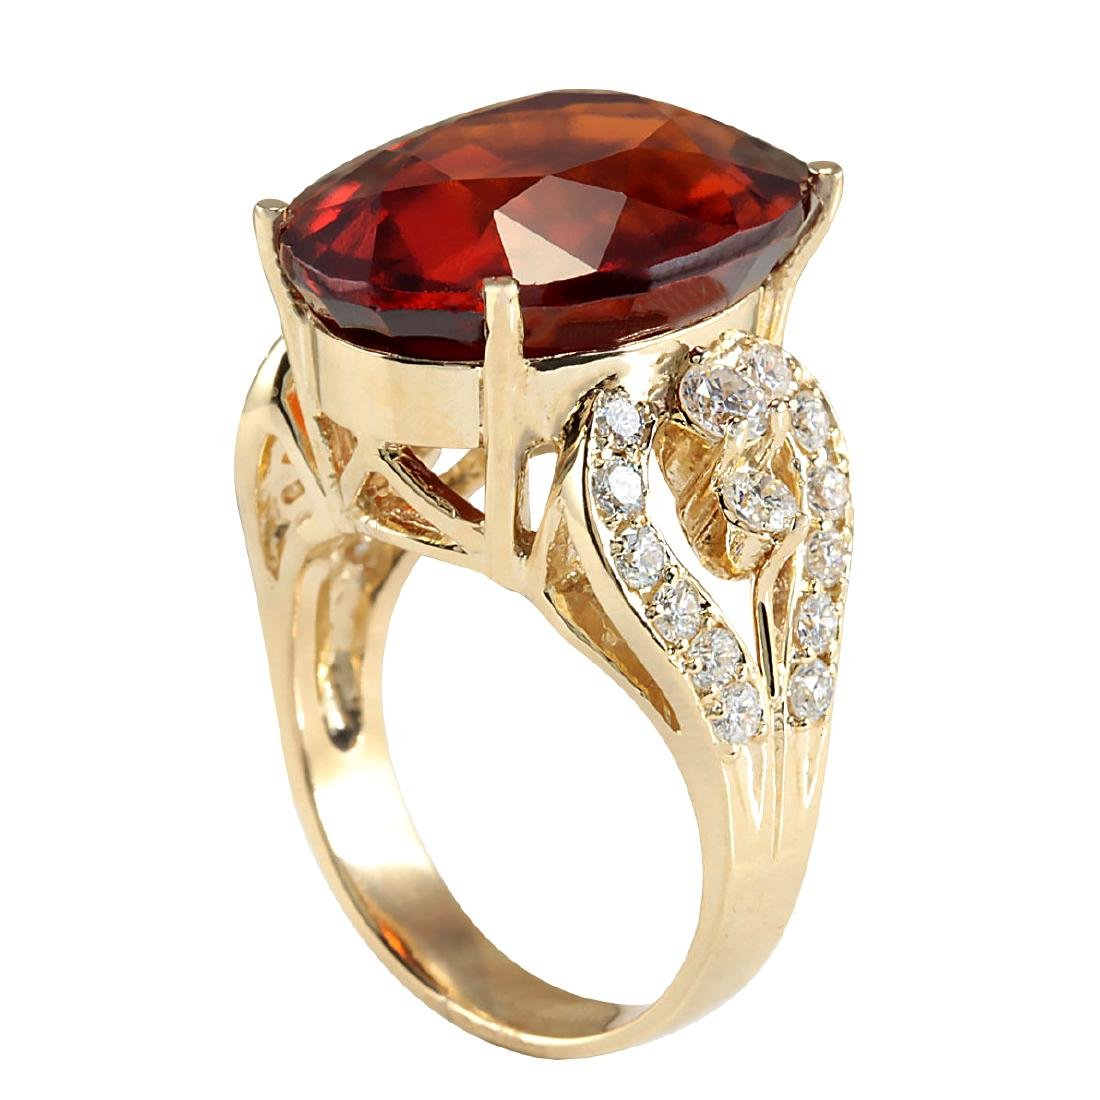 19.58CTW Natural Hessonite Garnet And Diamond Ring In - 3